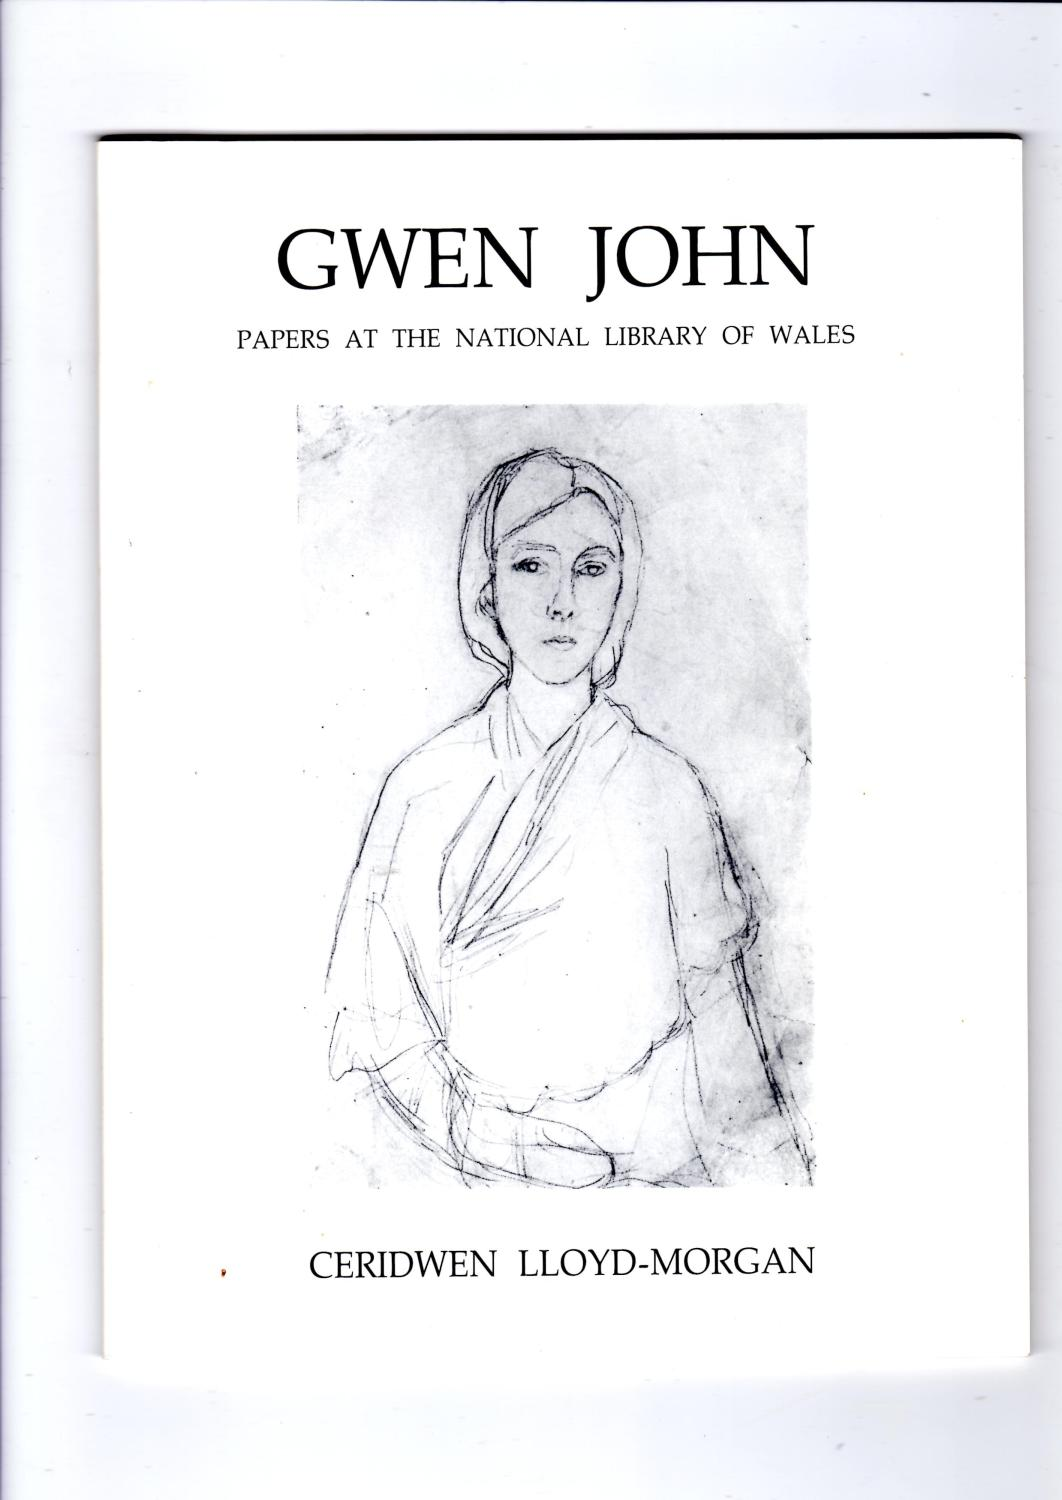 Gwen John papers at the National Library of Wales - Ceridwen Lloyd-Morgan